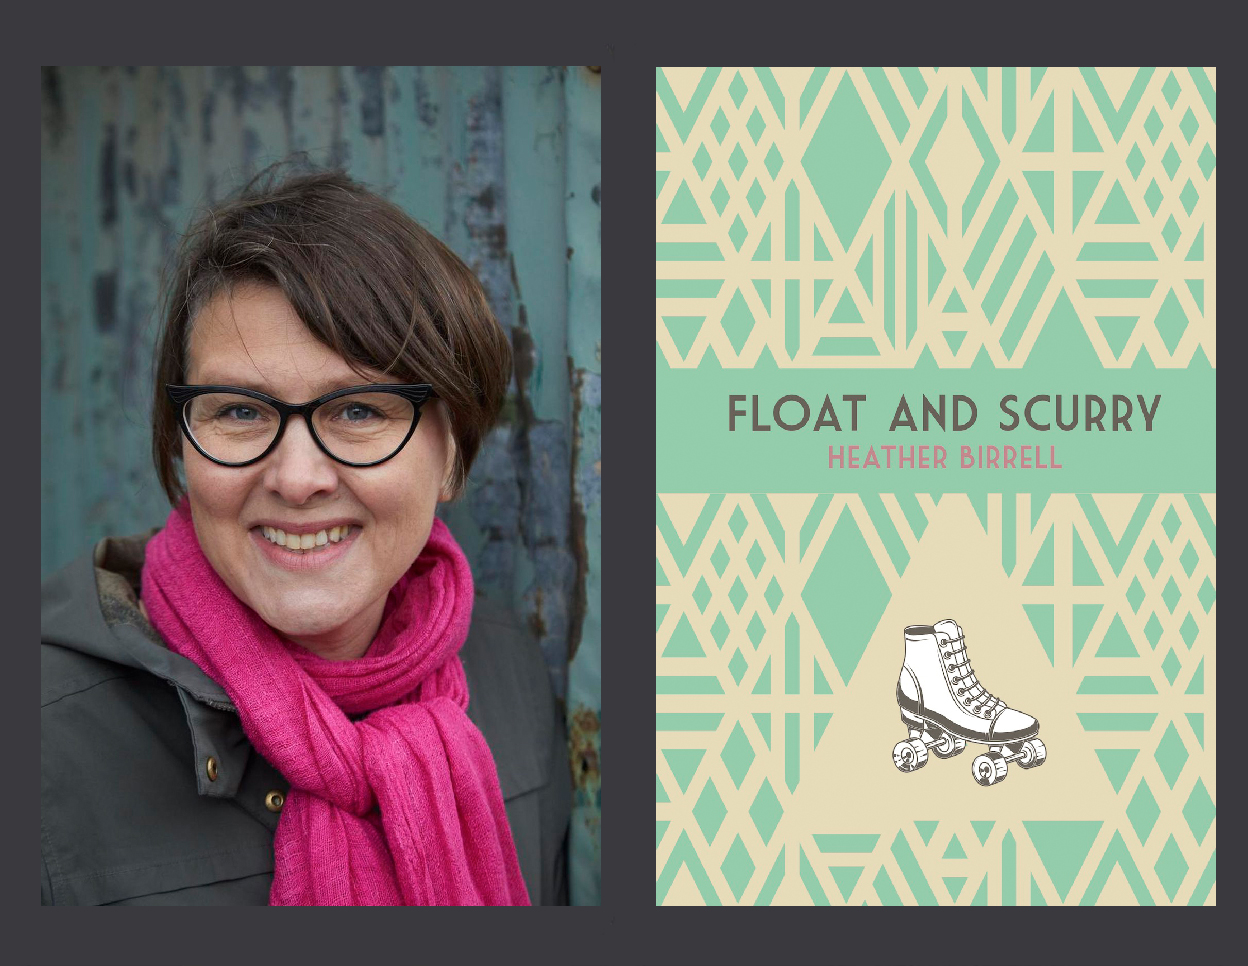 Photo of Heather Birrell and Cover of Float and Scurry